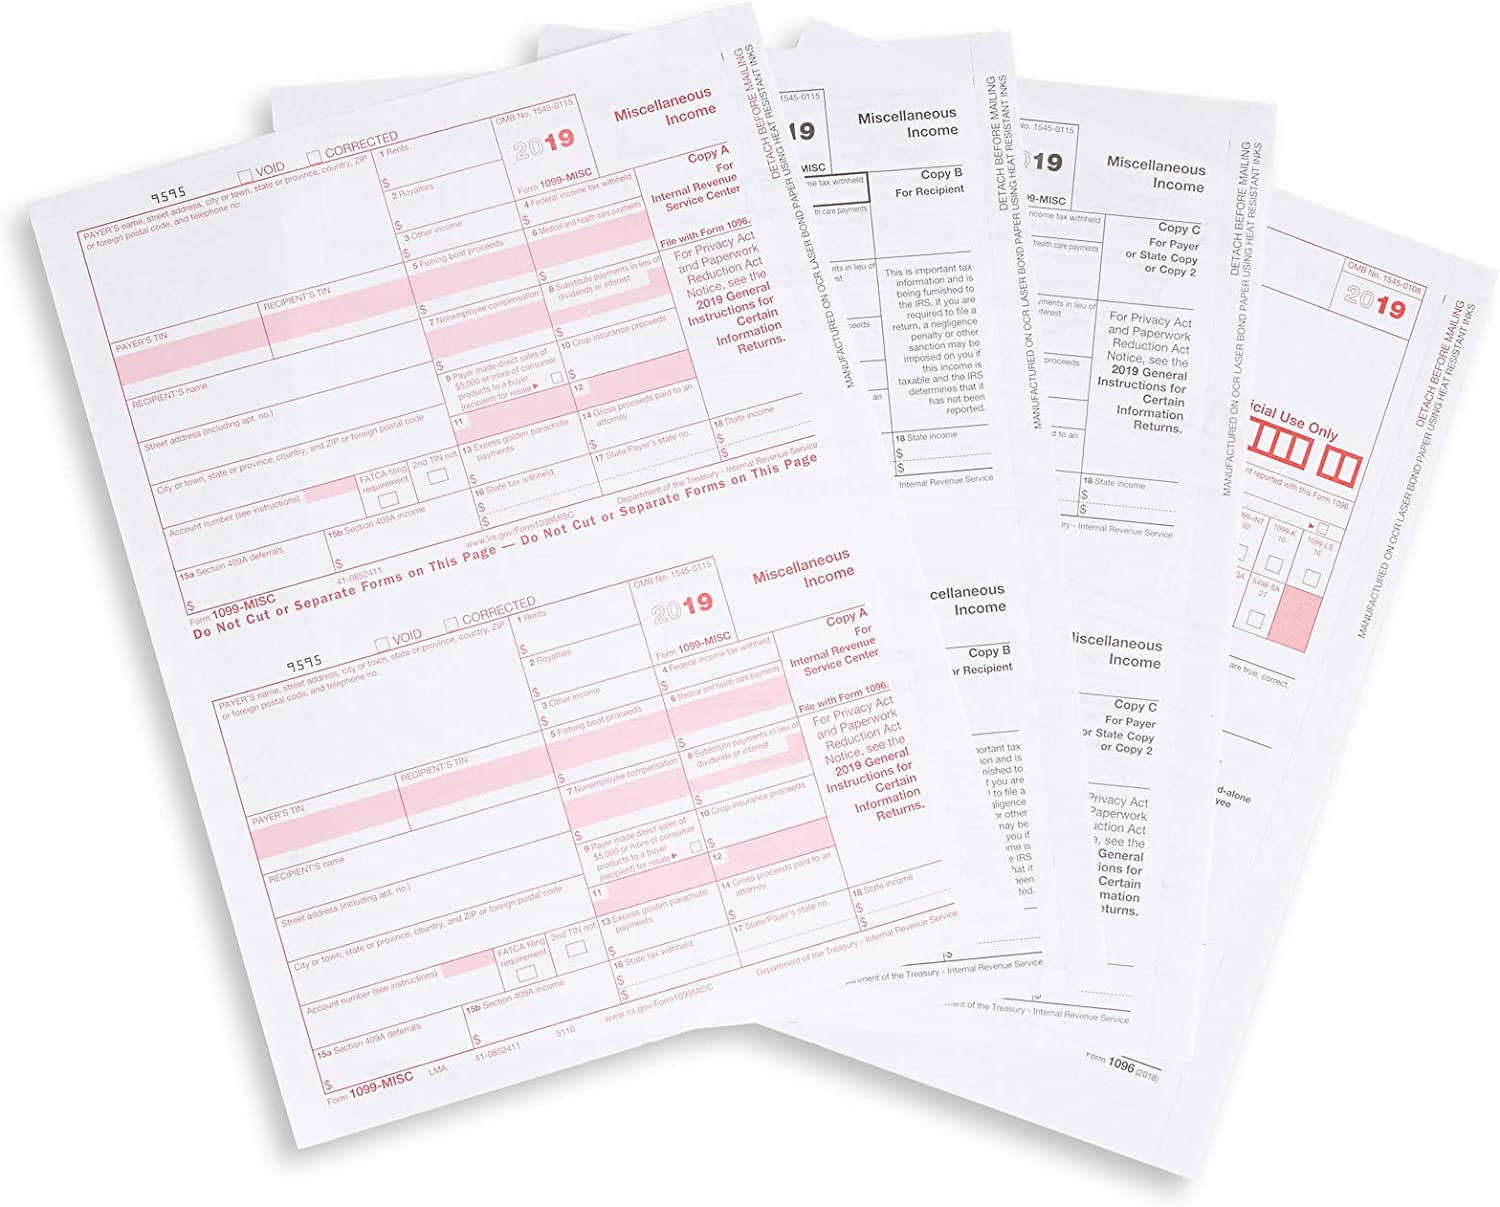 1099 MISC Forms 2019 5 Part Tax Forms Kit 50 Vendor Kit of Laser Forms Designed for QuickBooks and Accounting Software